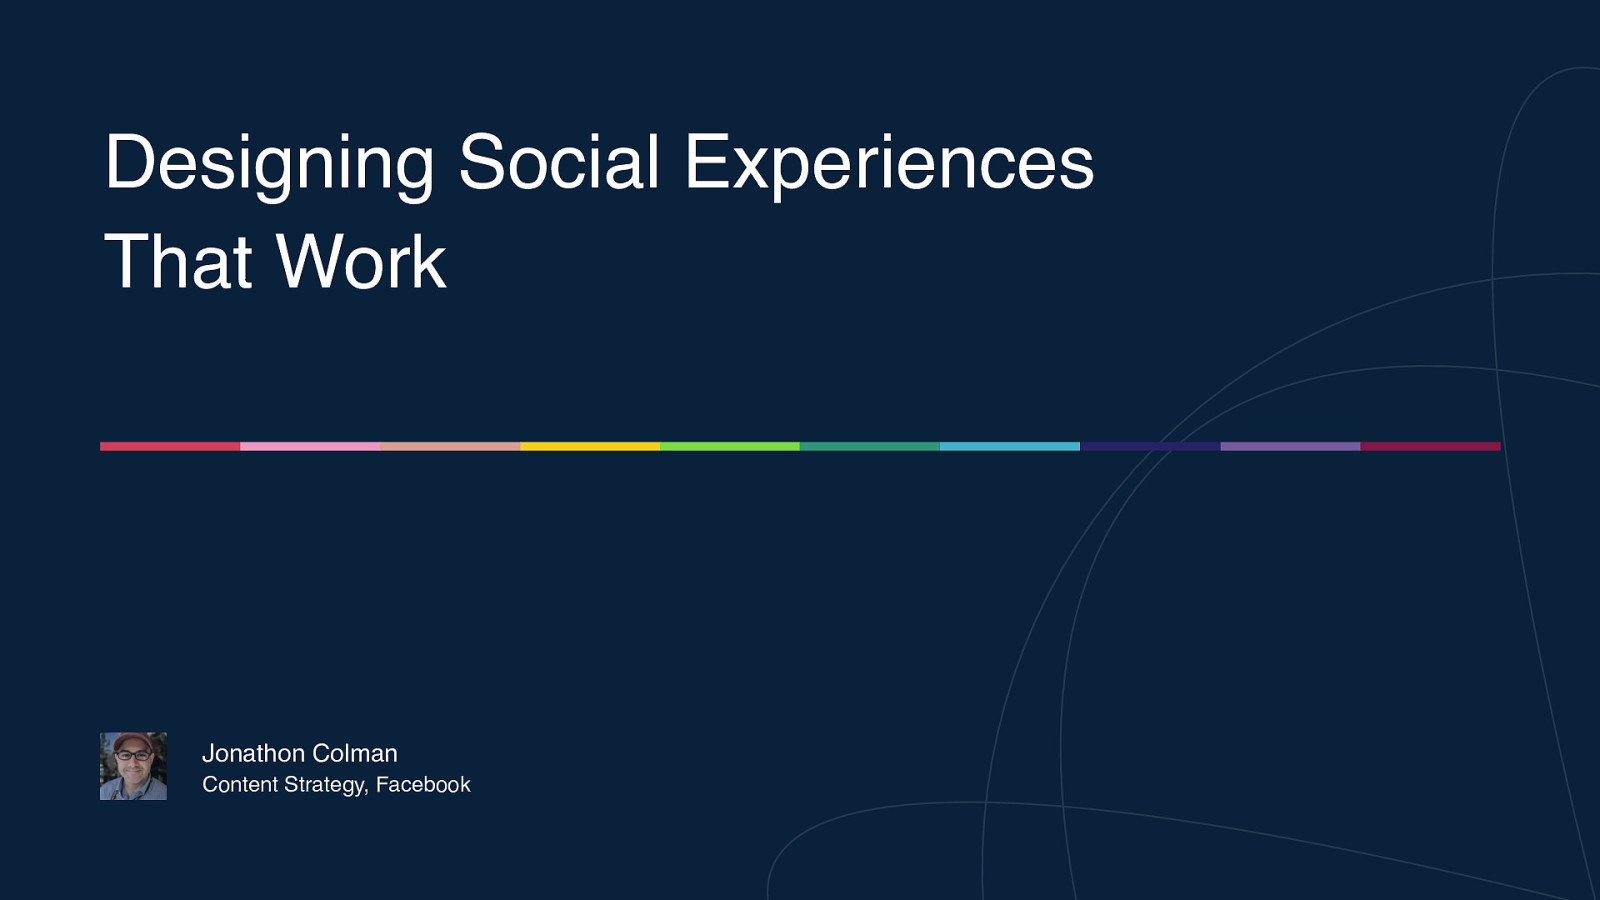 Designing Social Experiences That Work